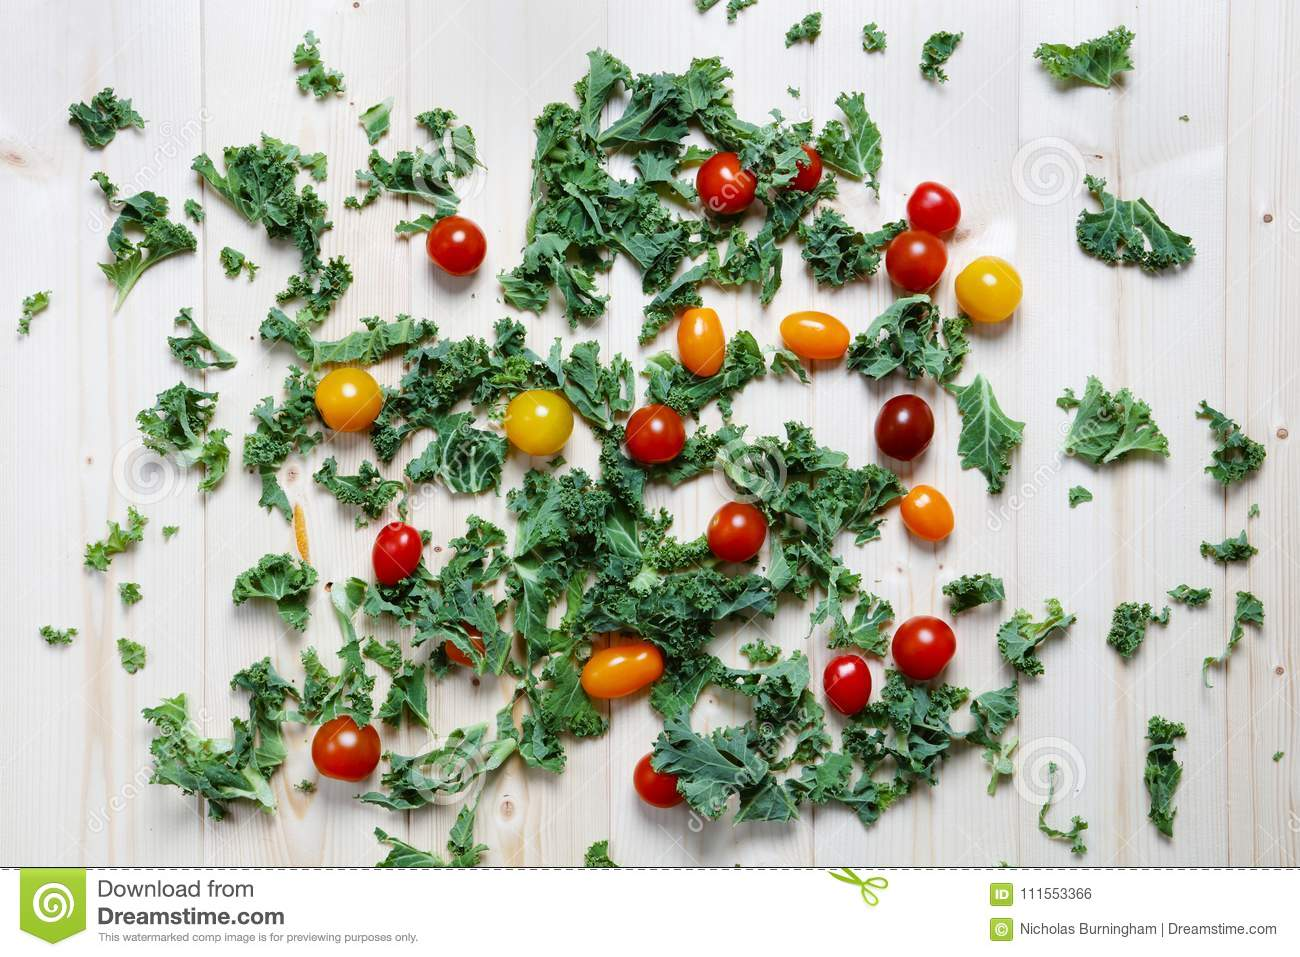 Chopped green kale with red and yellow plum cherry tomatoes